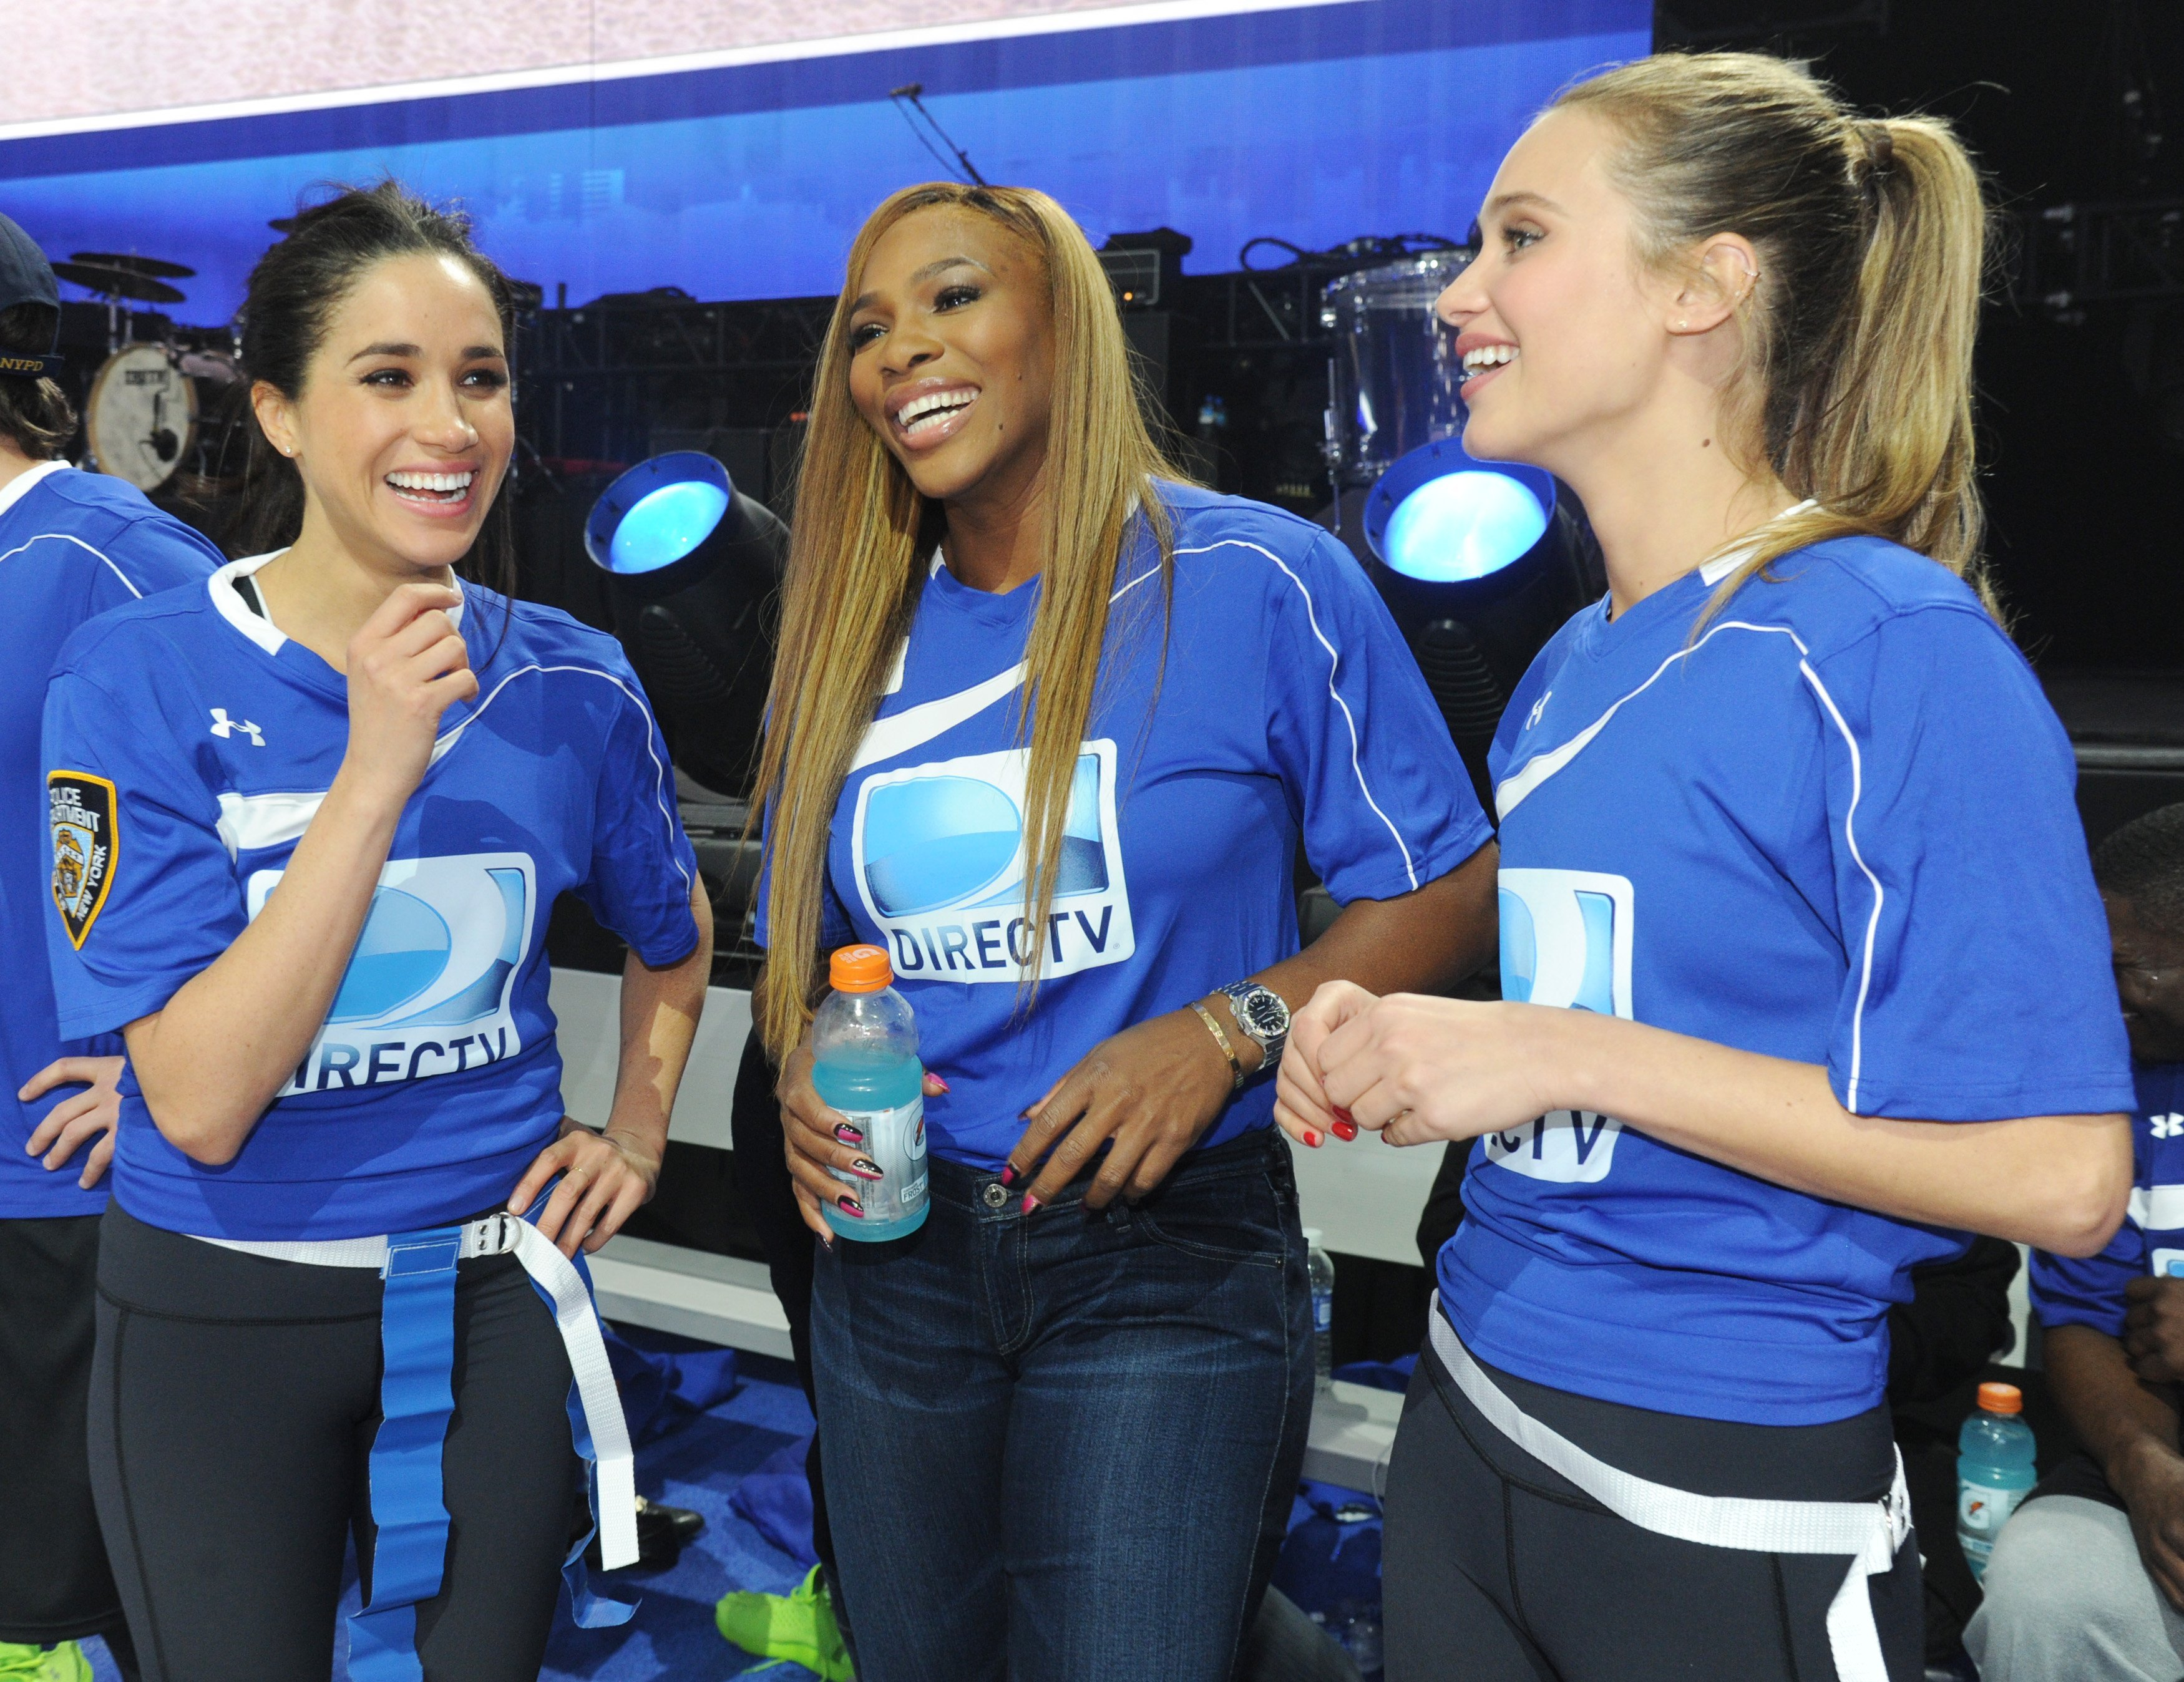 A then-single Meghan Markle joined Serena Williams and Hannah Davis at the DirecTV Beach Bowl at Pier 40 on February 1, 2014. | Source: Getty